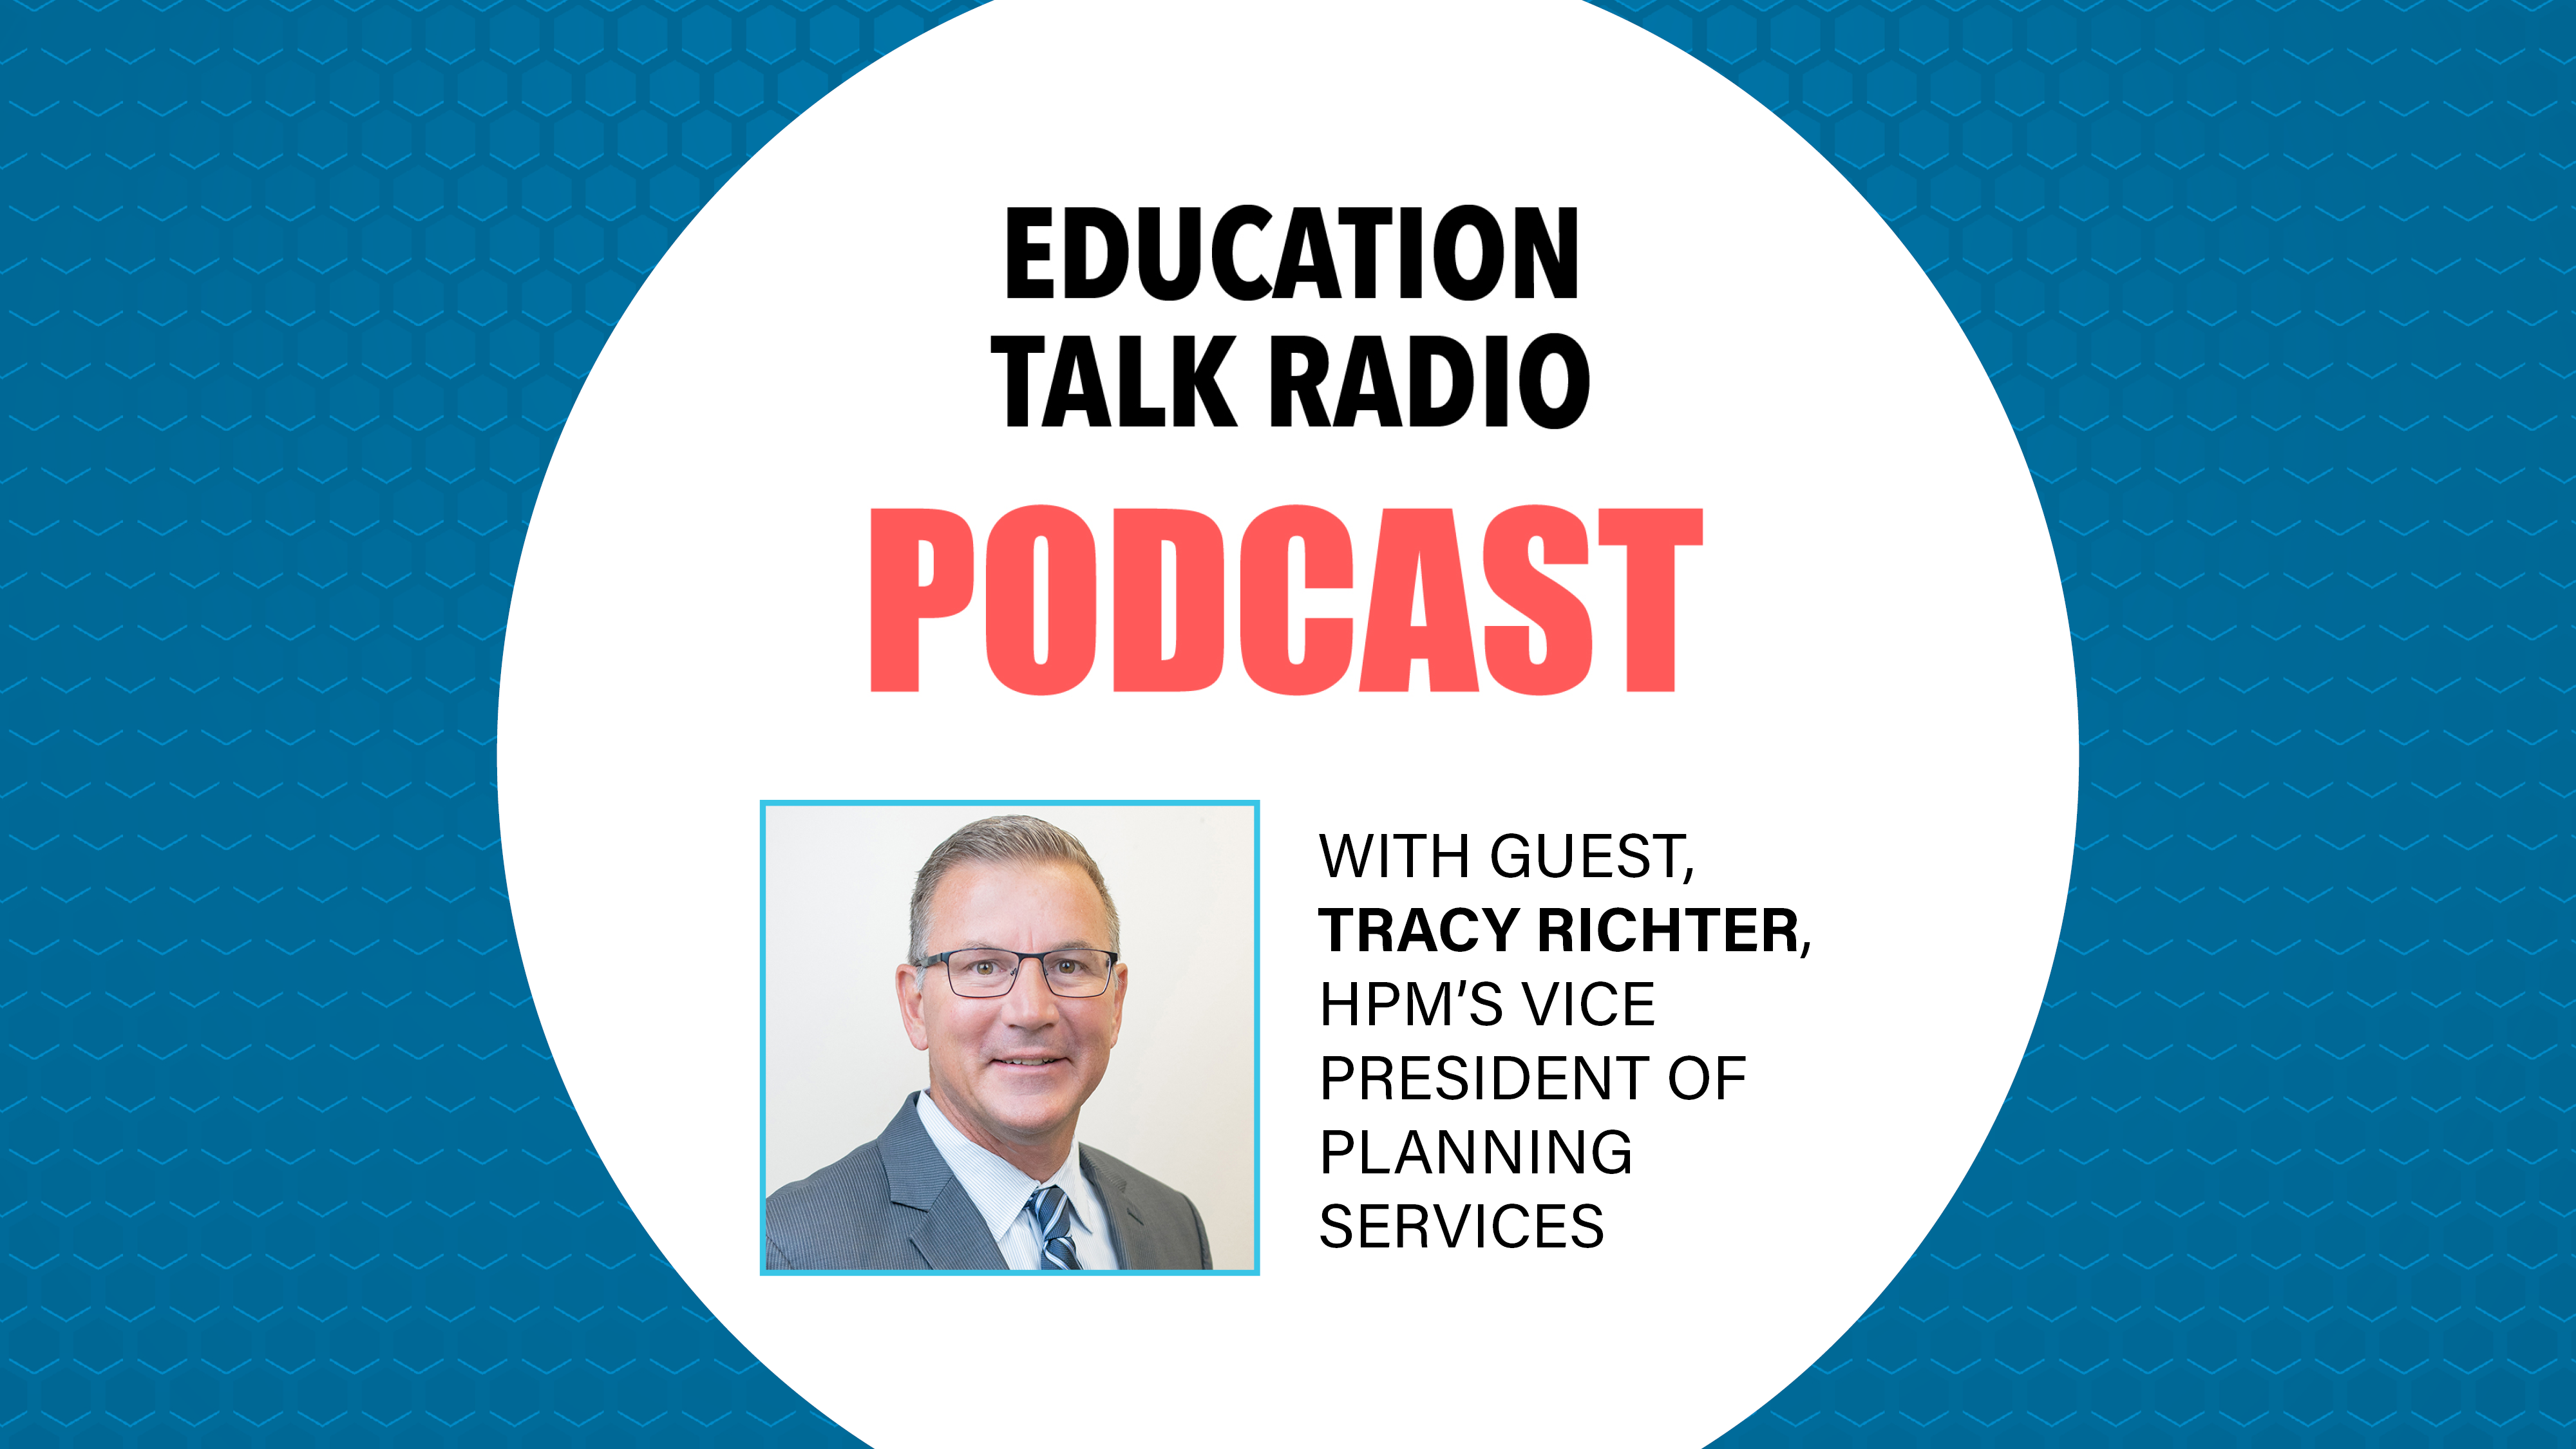 Education Talk Radio